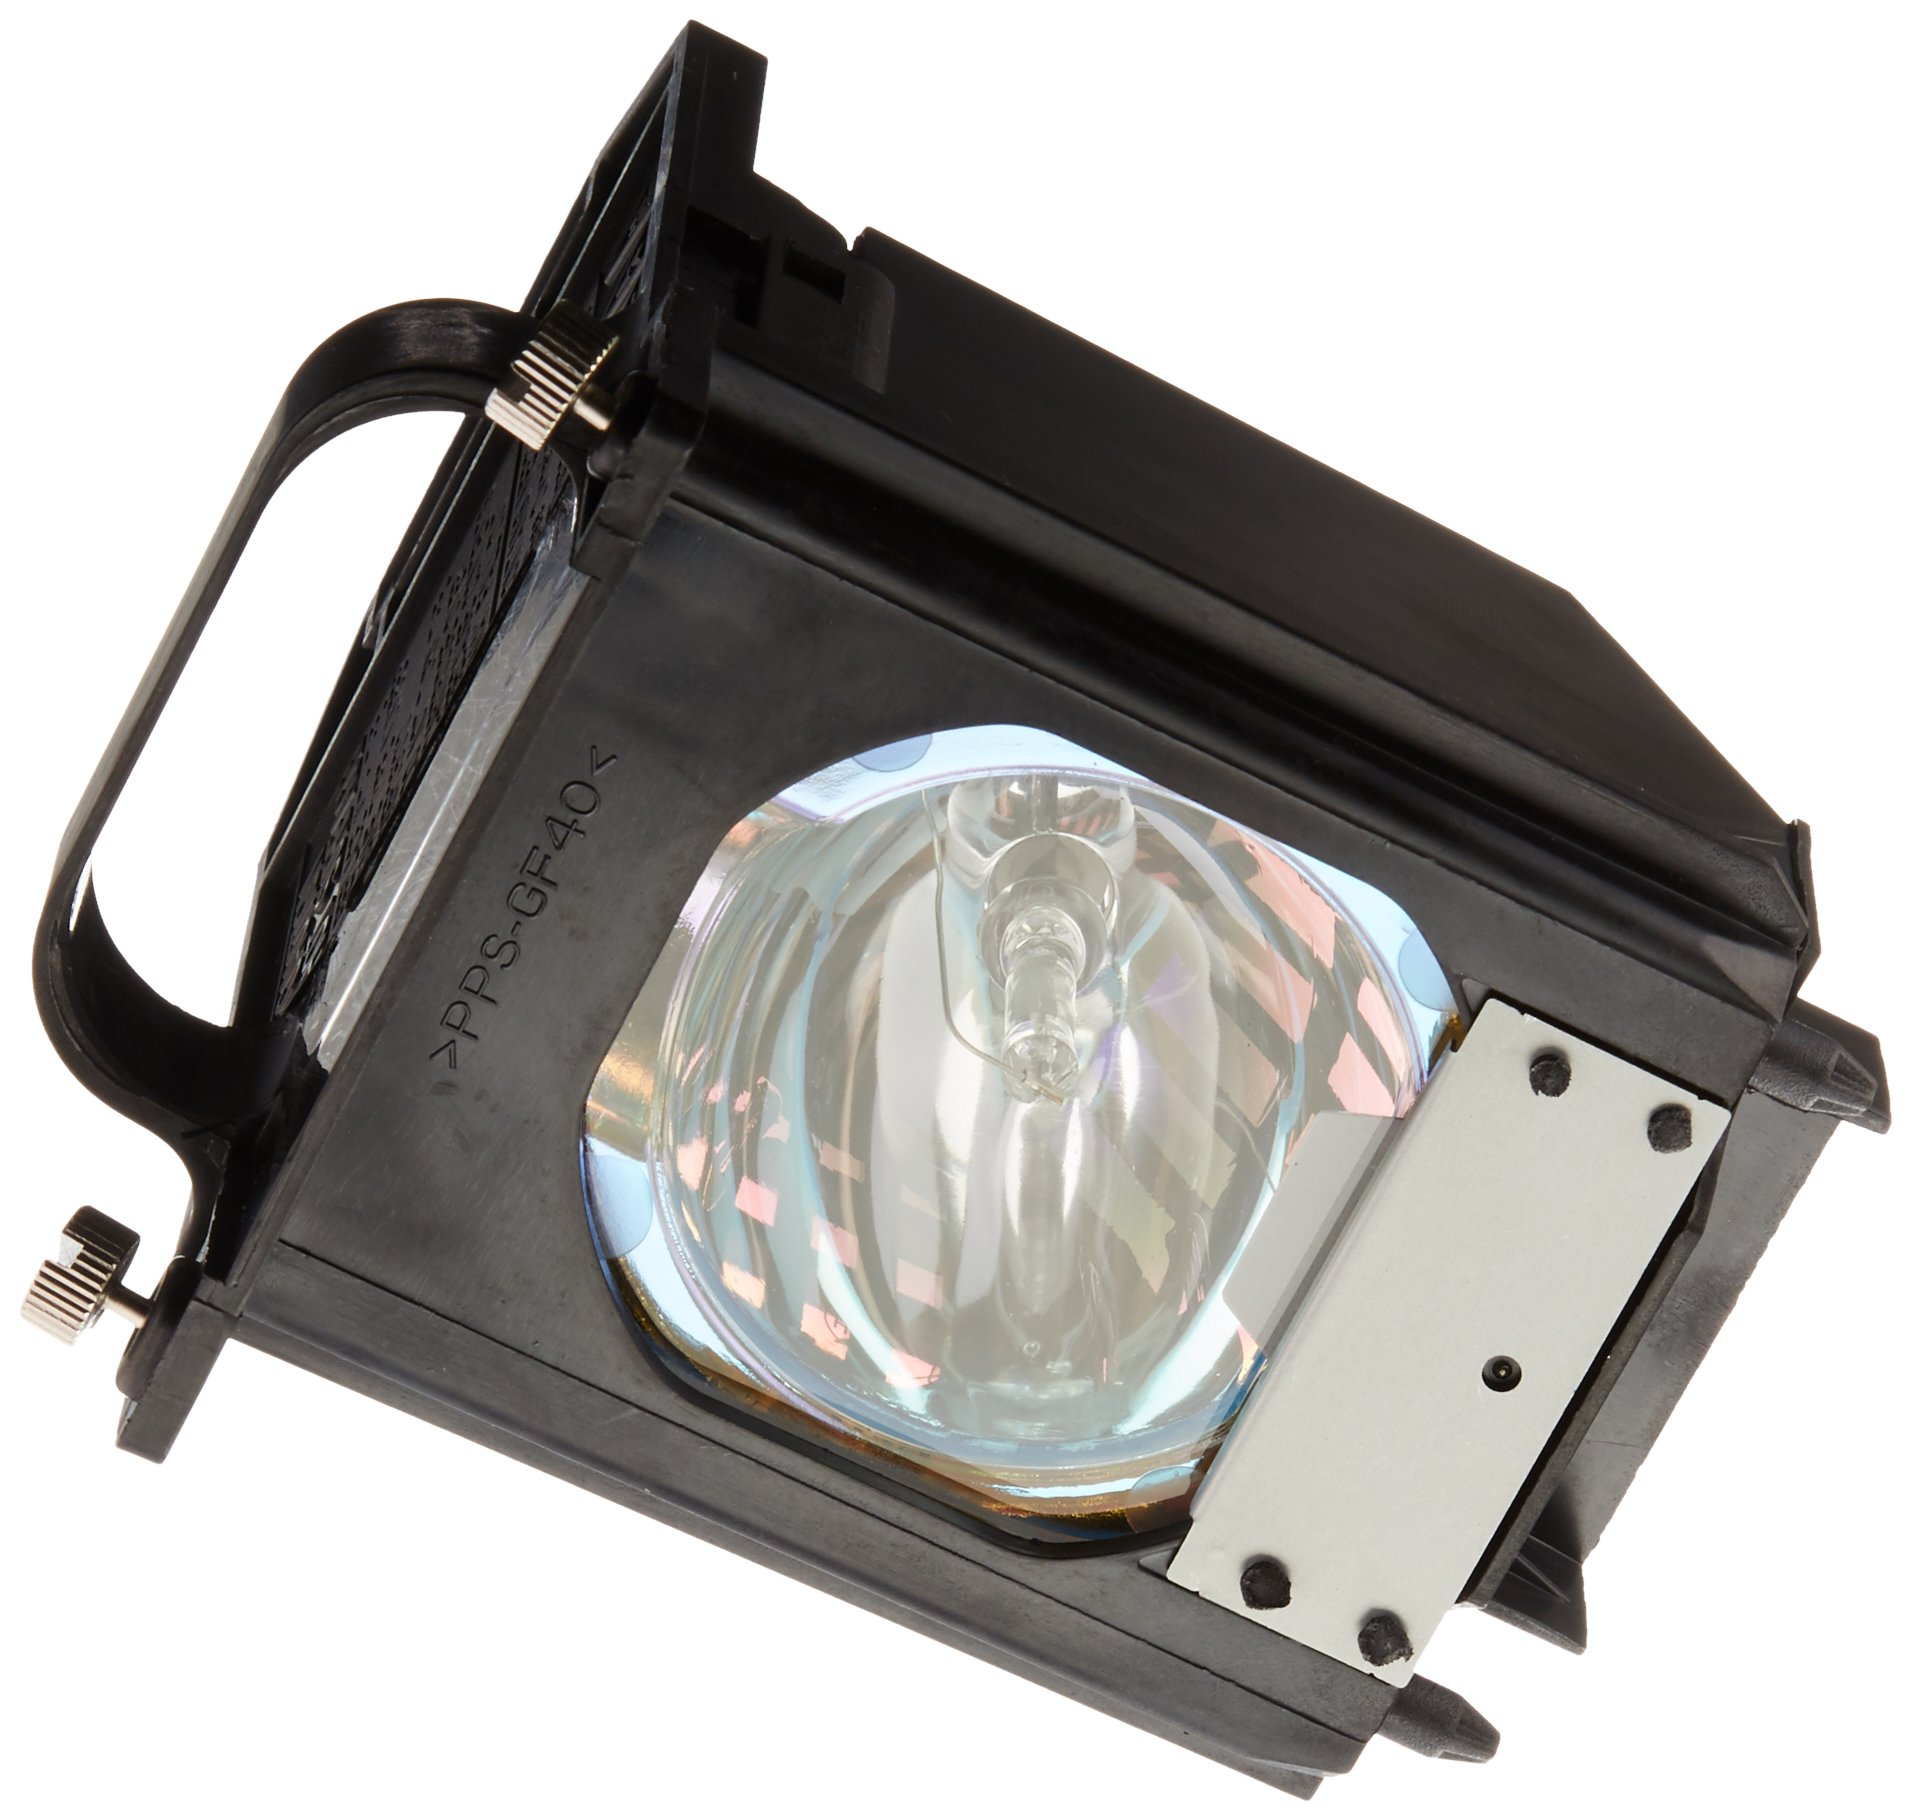 Mitsubishi WD-73733 150 Watt TV Lamp Replacement